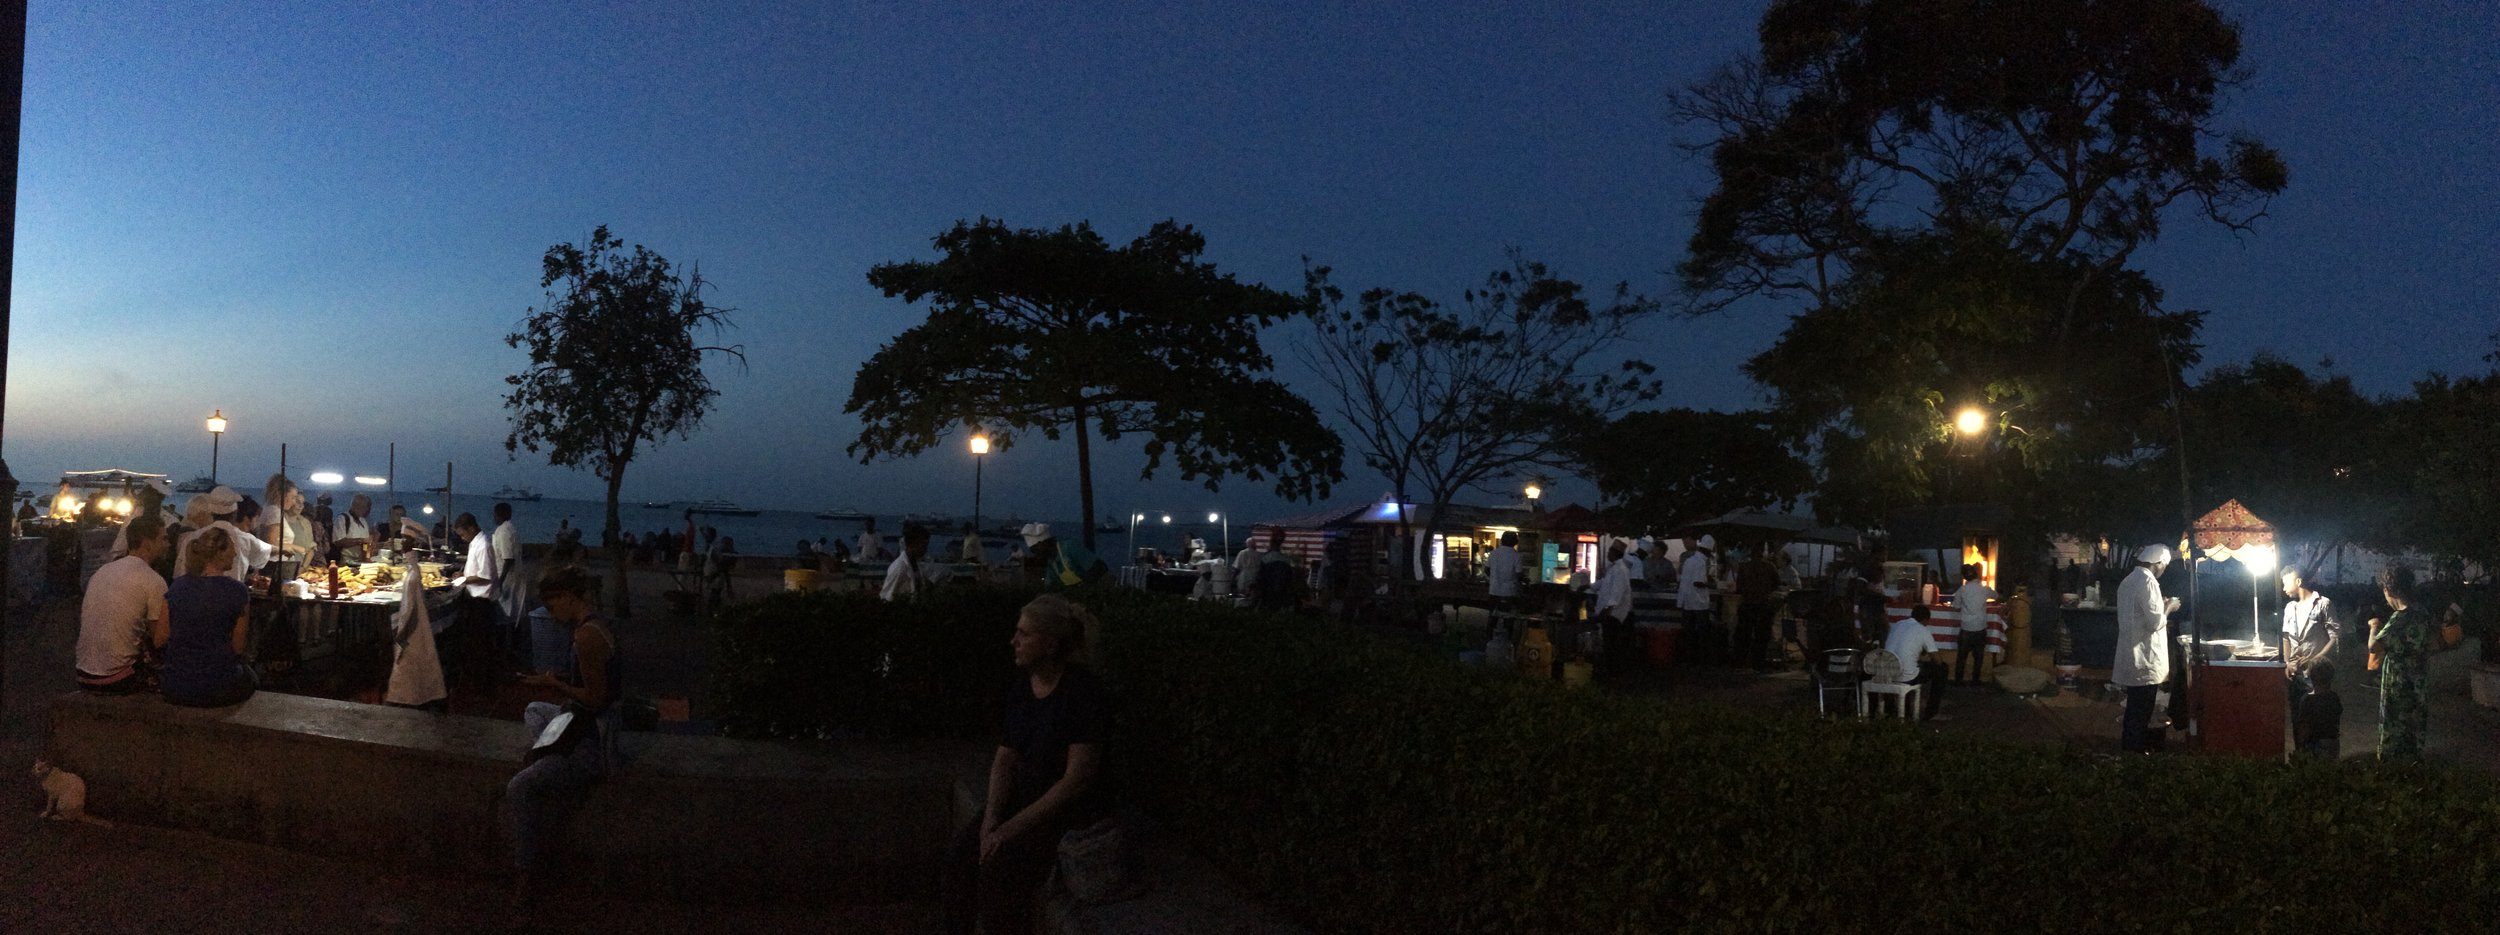 Our last night on Zanzibar, we found an open air food market for a seafood feast